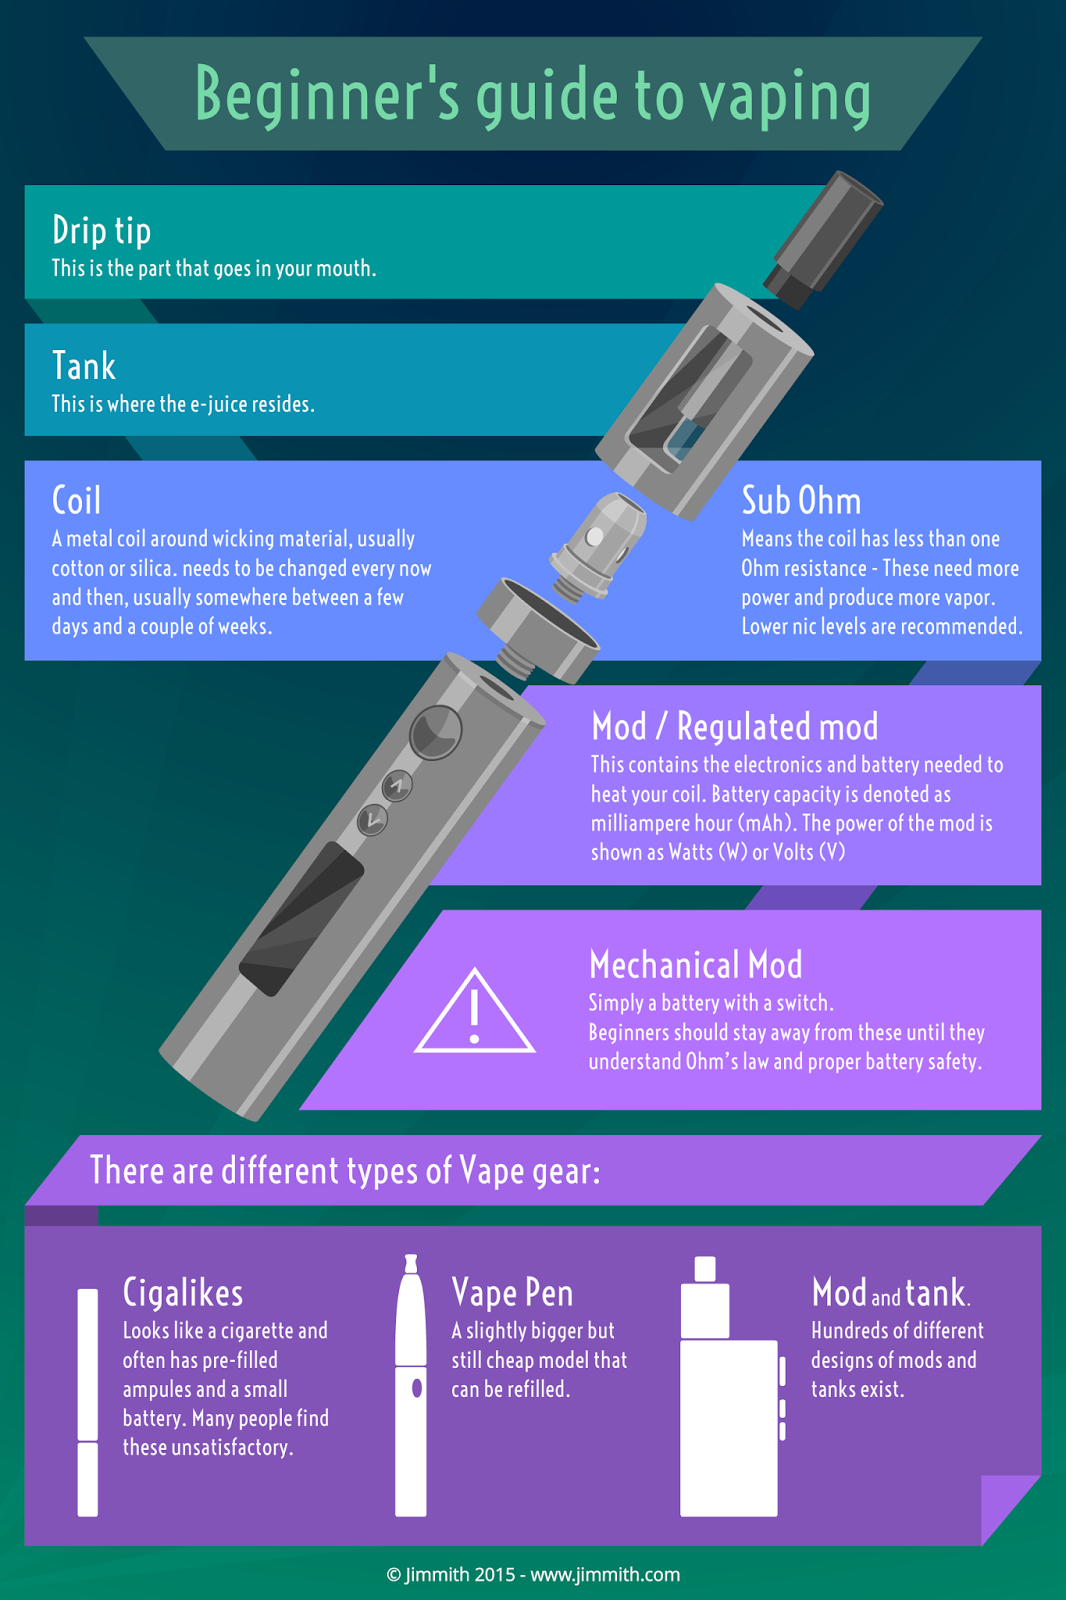 Jimmith: Visual Learning - Beginners guide to vaping